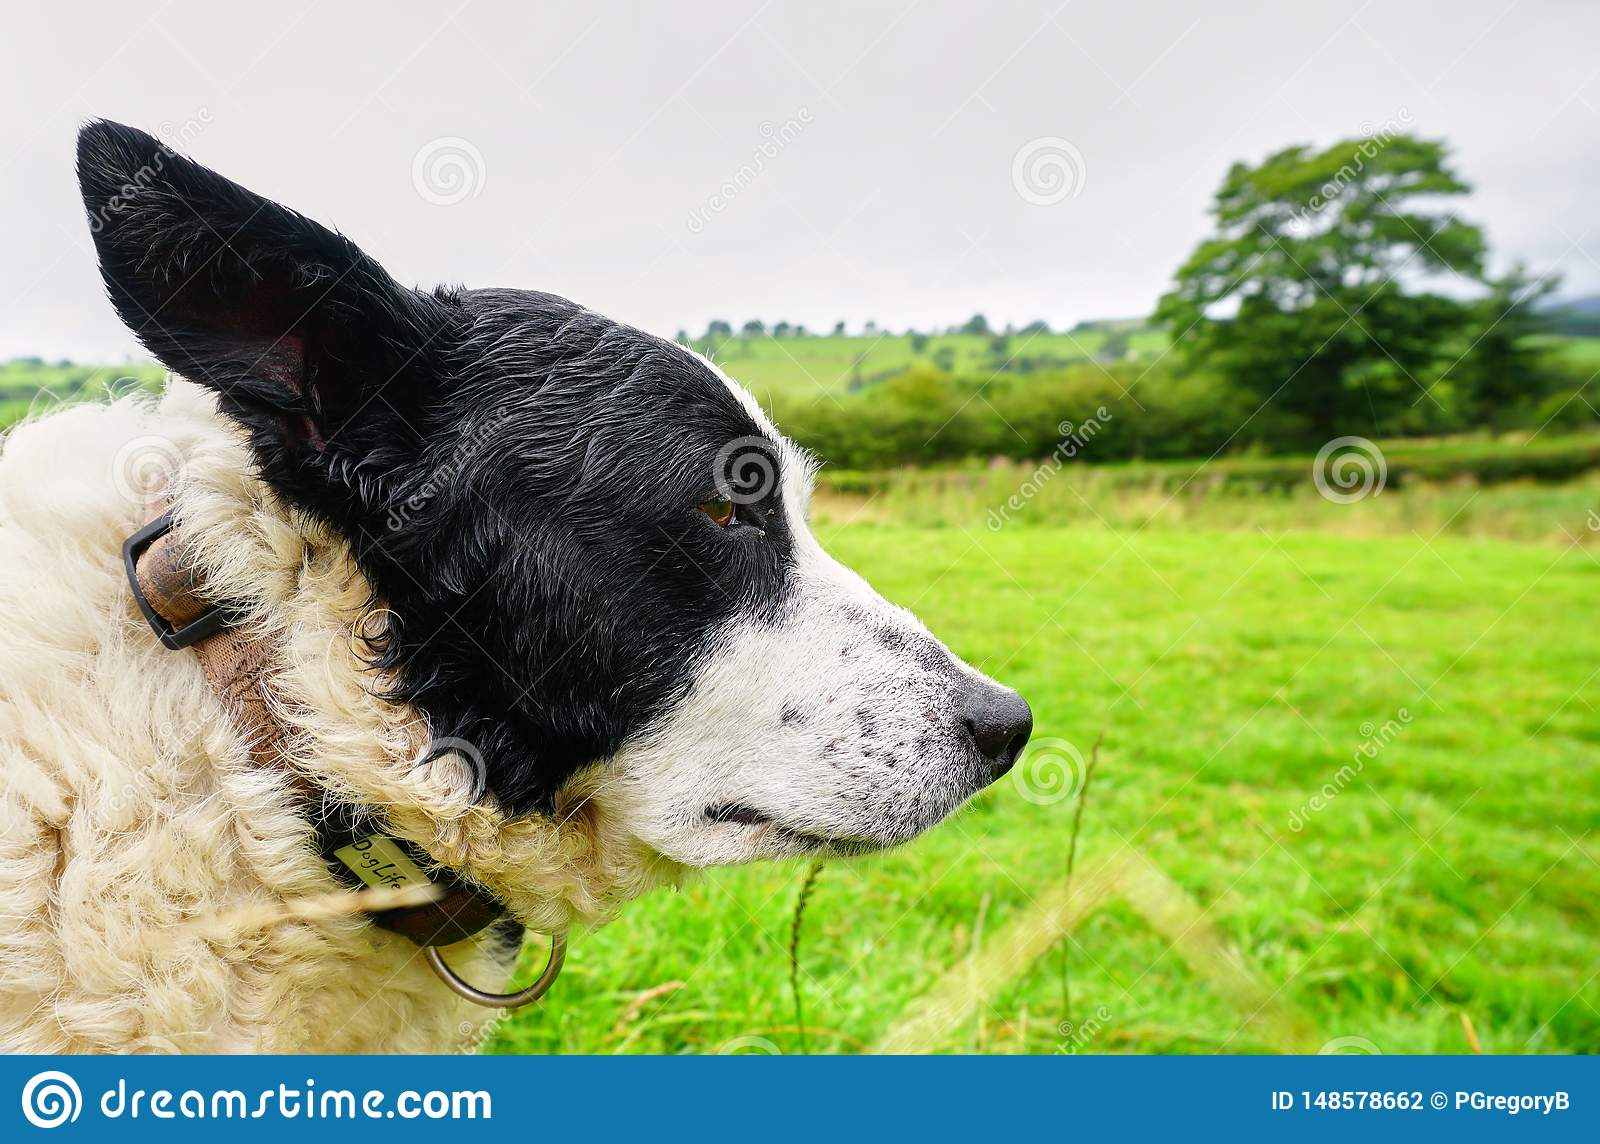 Wise old Sheep Dog in Welsh Countryside